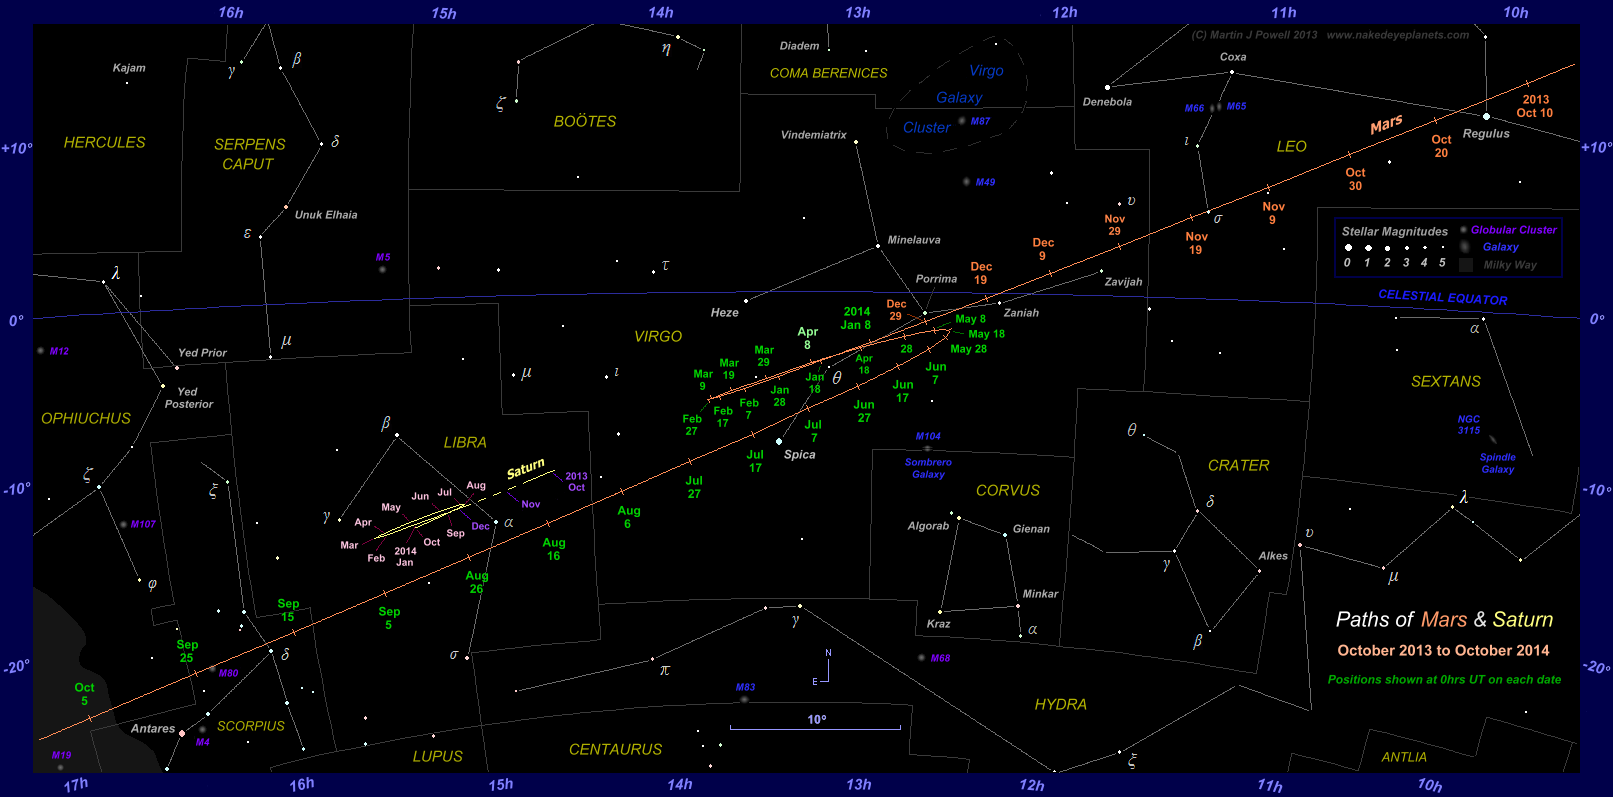 Paths of Mars and Saturn from October 2013 to October 2014 (Copyright Martin J Powell 2013)